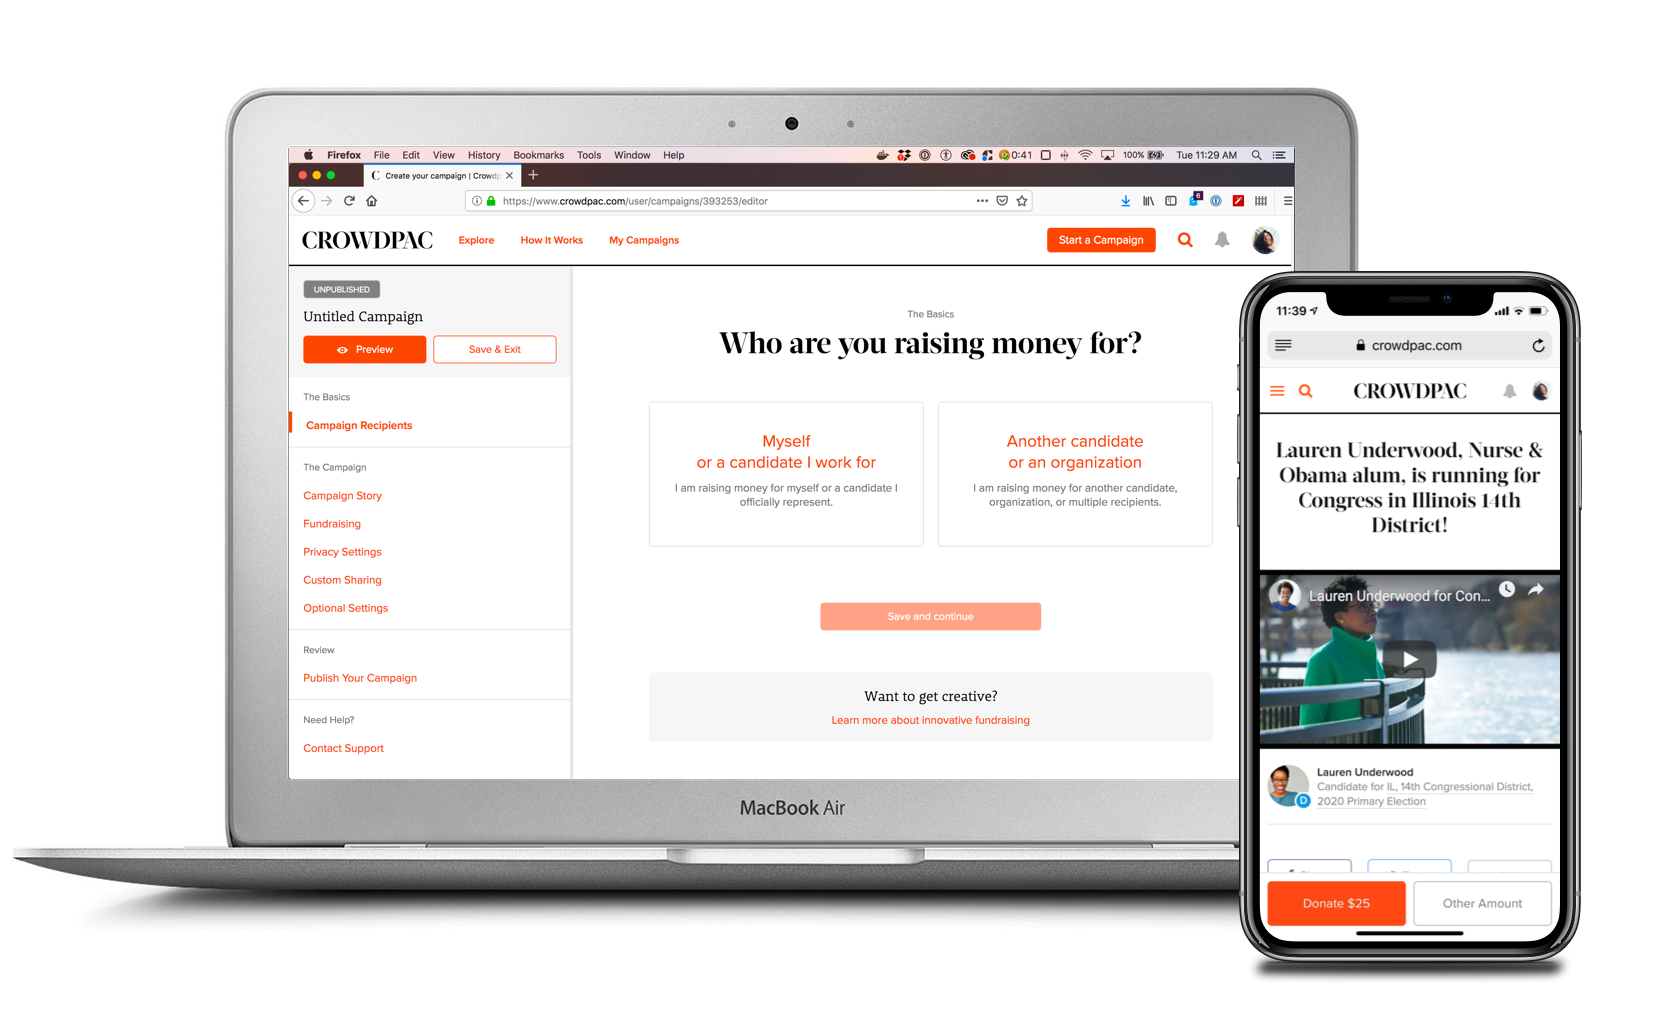 Crowdpac Product Design - A powerful platform for political change.